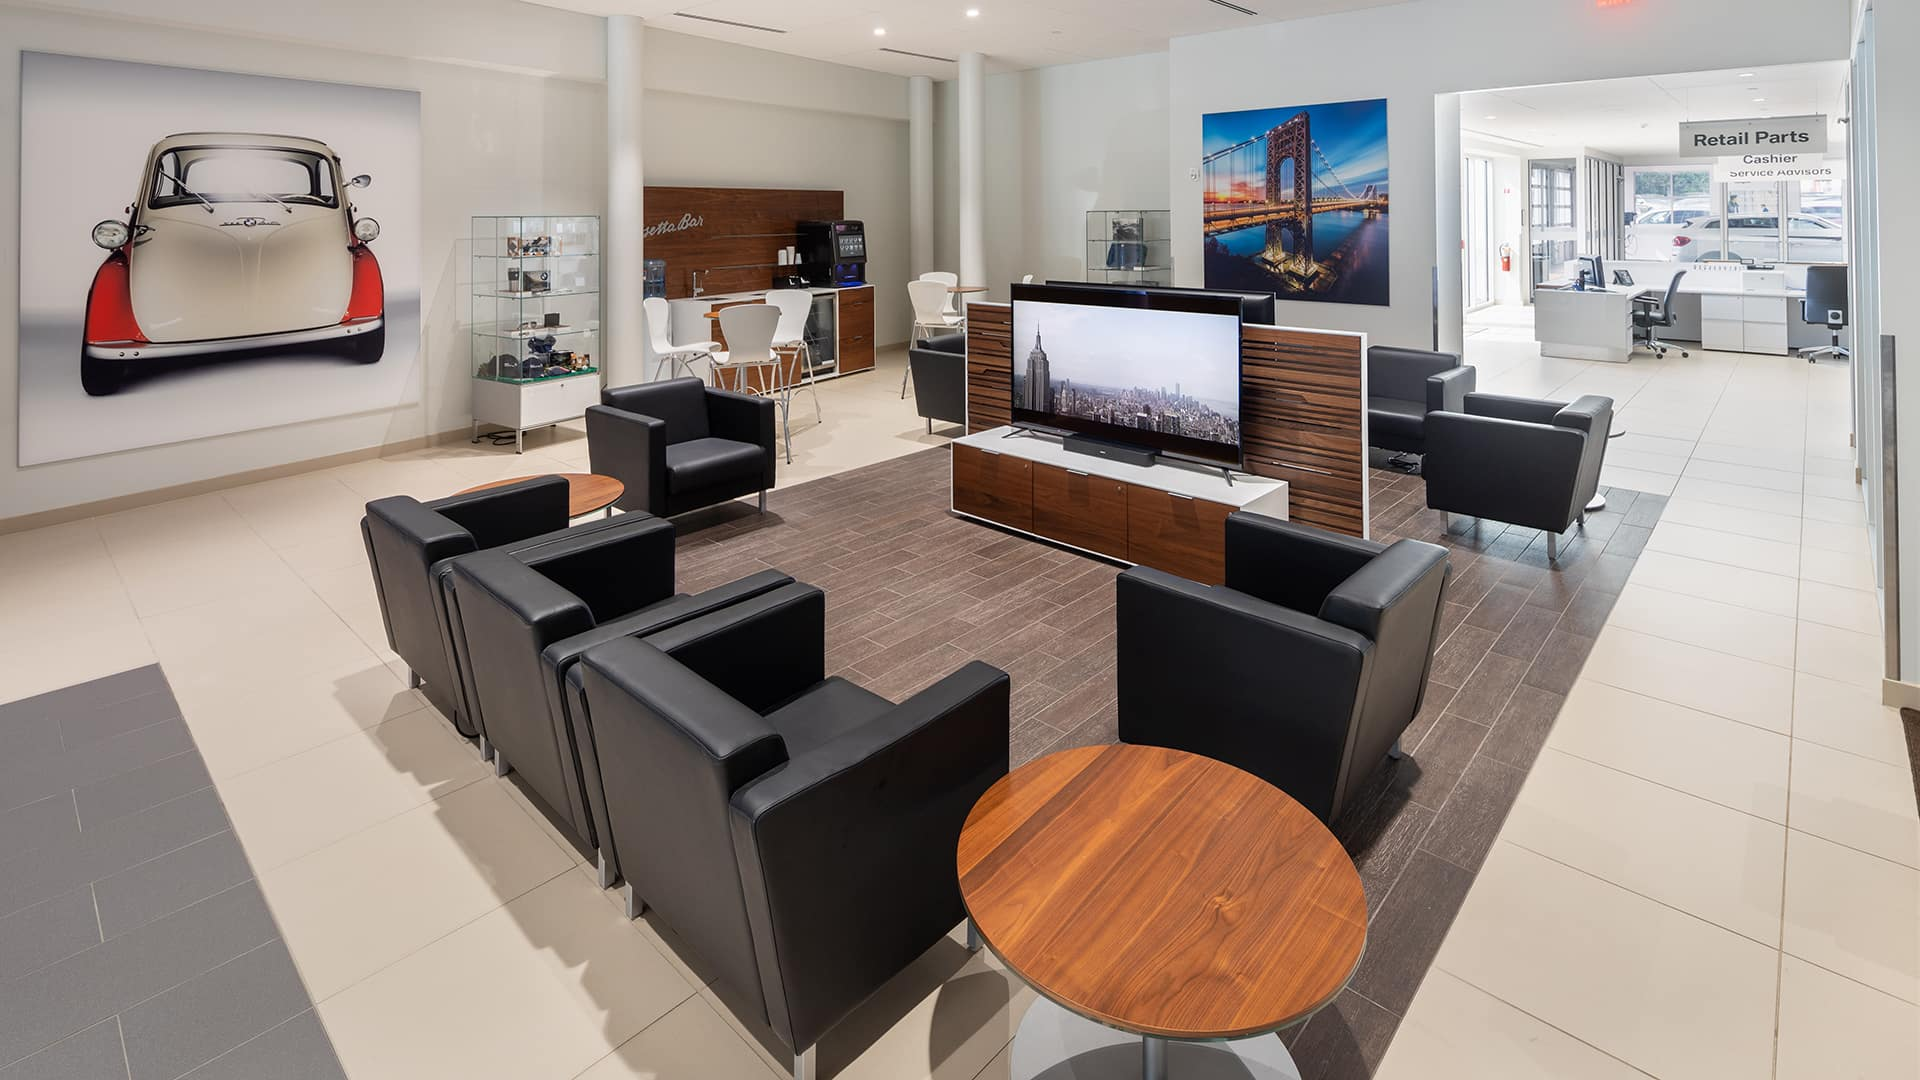 interior view of Wide World BMW waiting area